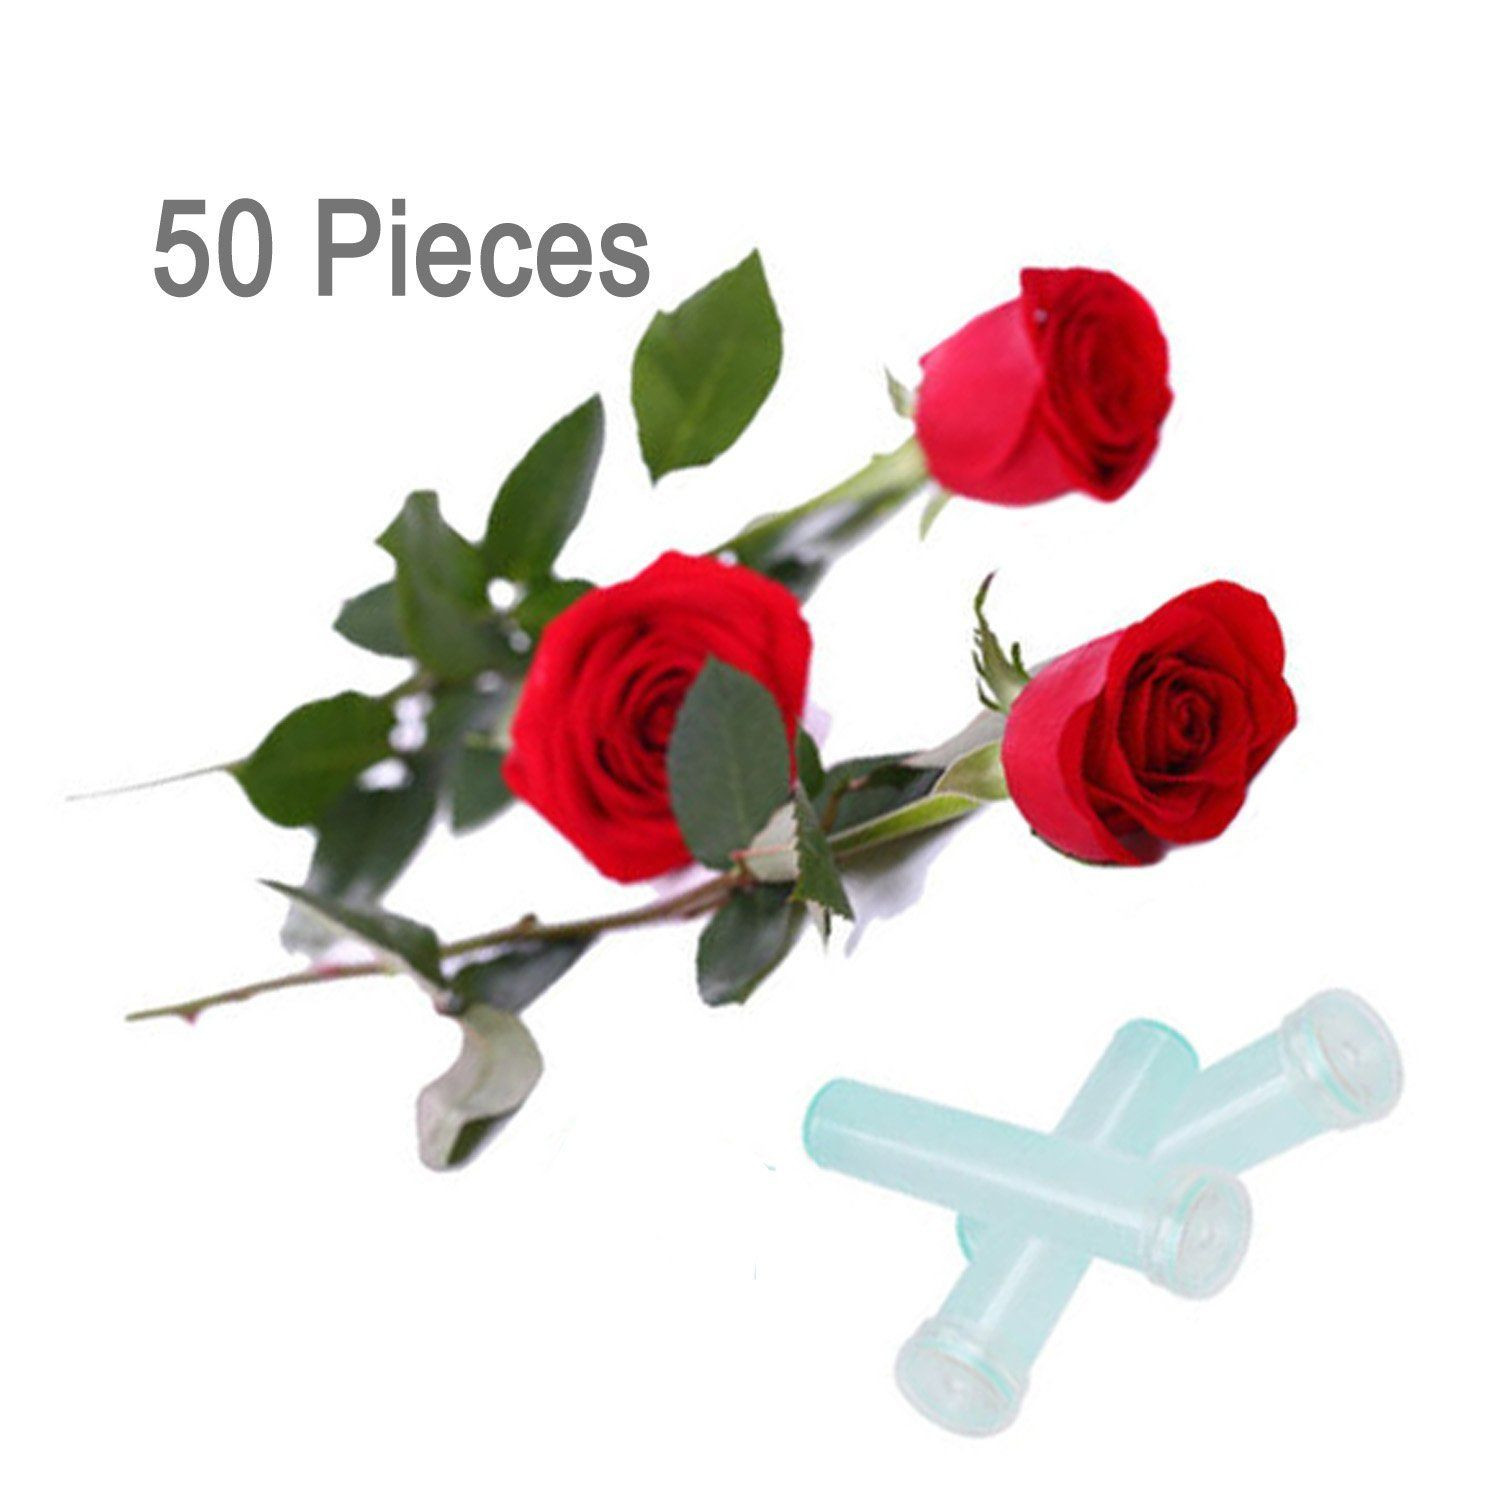 creative vase fillers of lieomo 3 50pcs clear floral water standard tubes vials with caps with regard to explore vase fillers flower arrangements and more